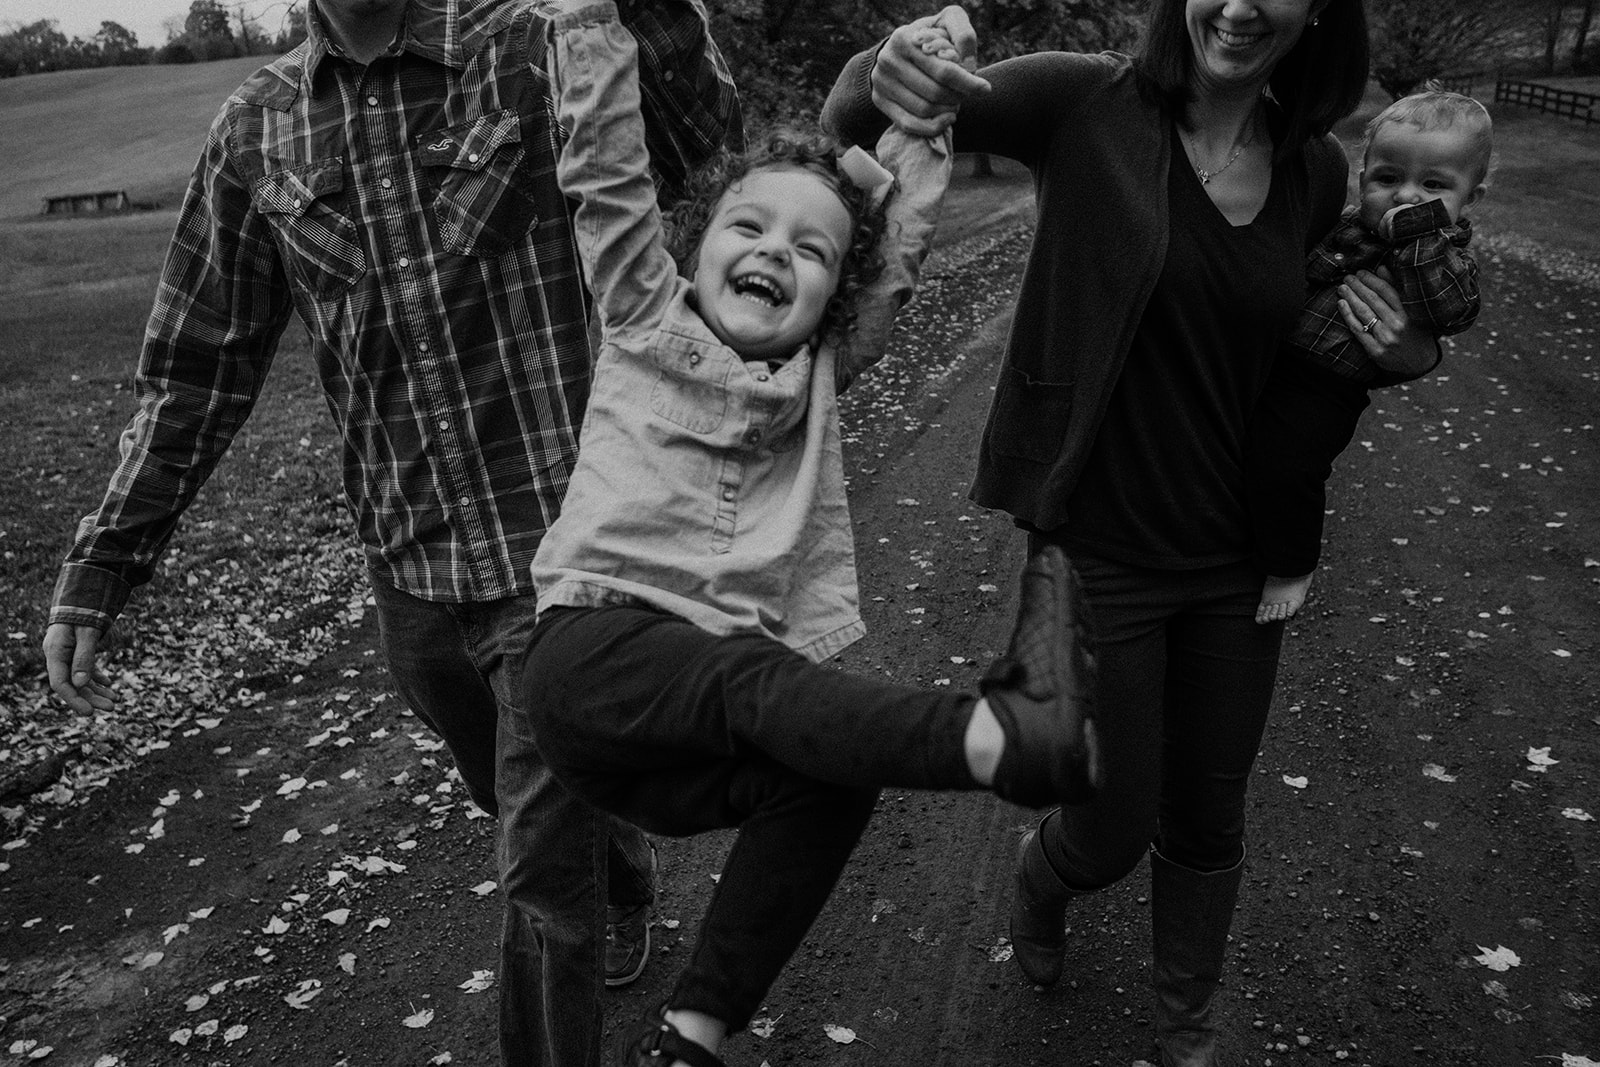 A little girl giggle joyfully as she is swung by her parents walking through Morven Park.